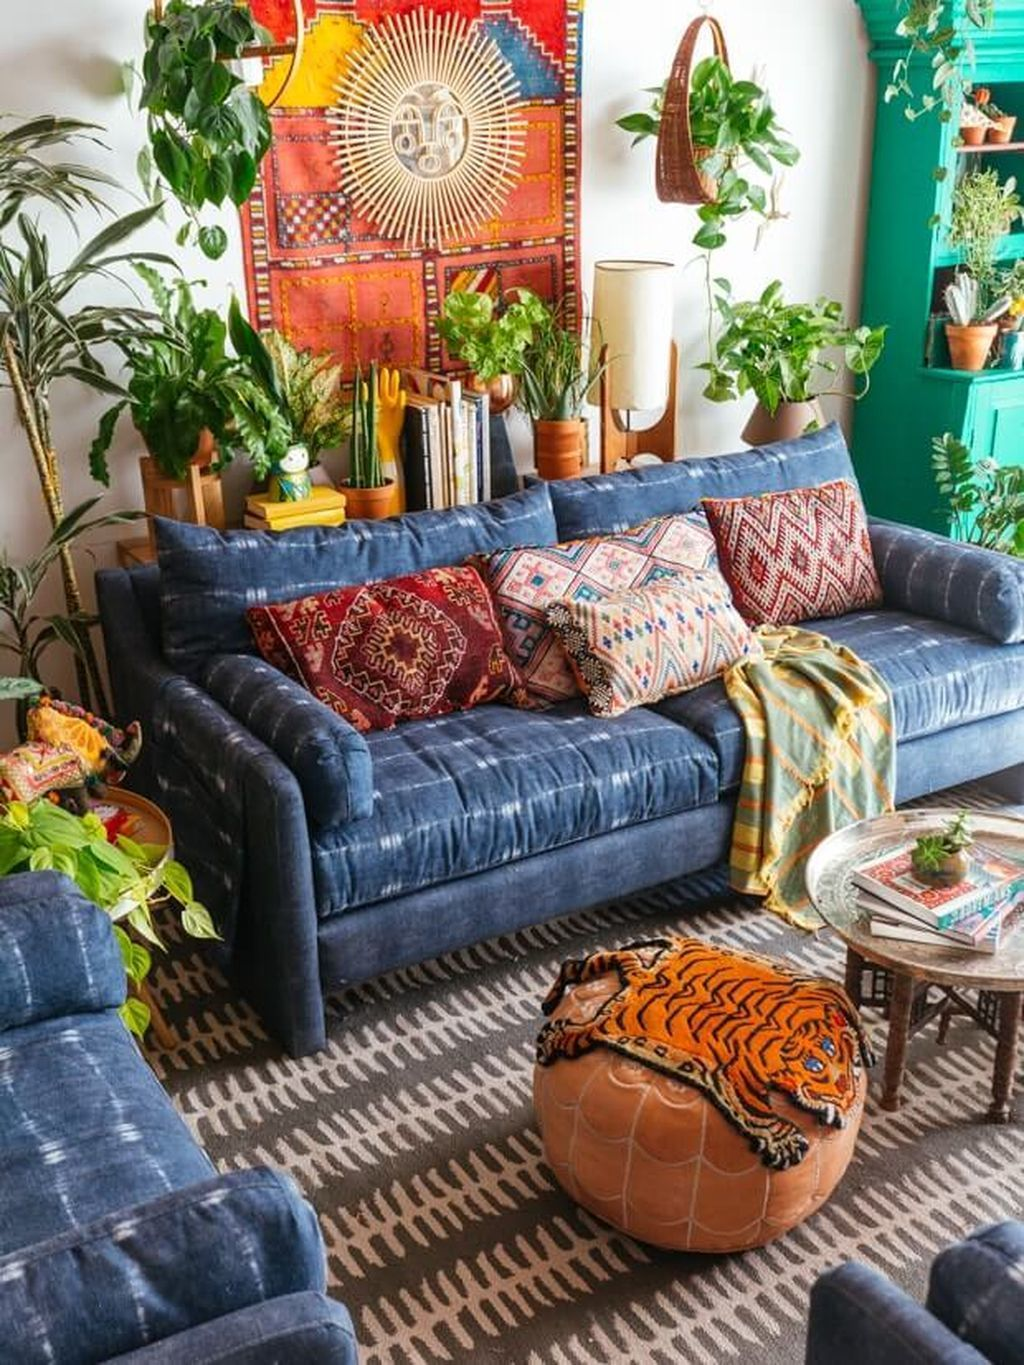 90+ Modern Rustic Bohemian Living Room Design Ideas Http://www.aladdinslamp